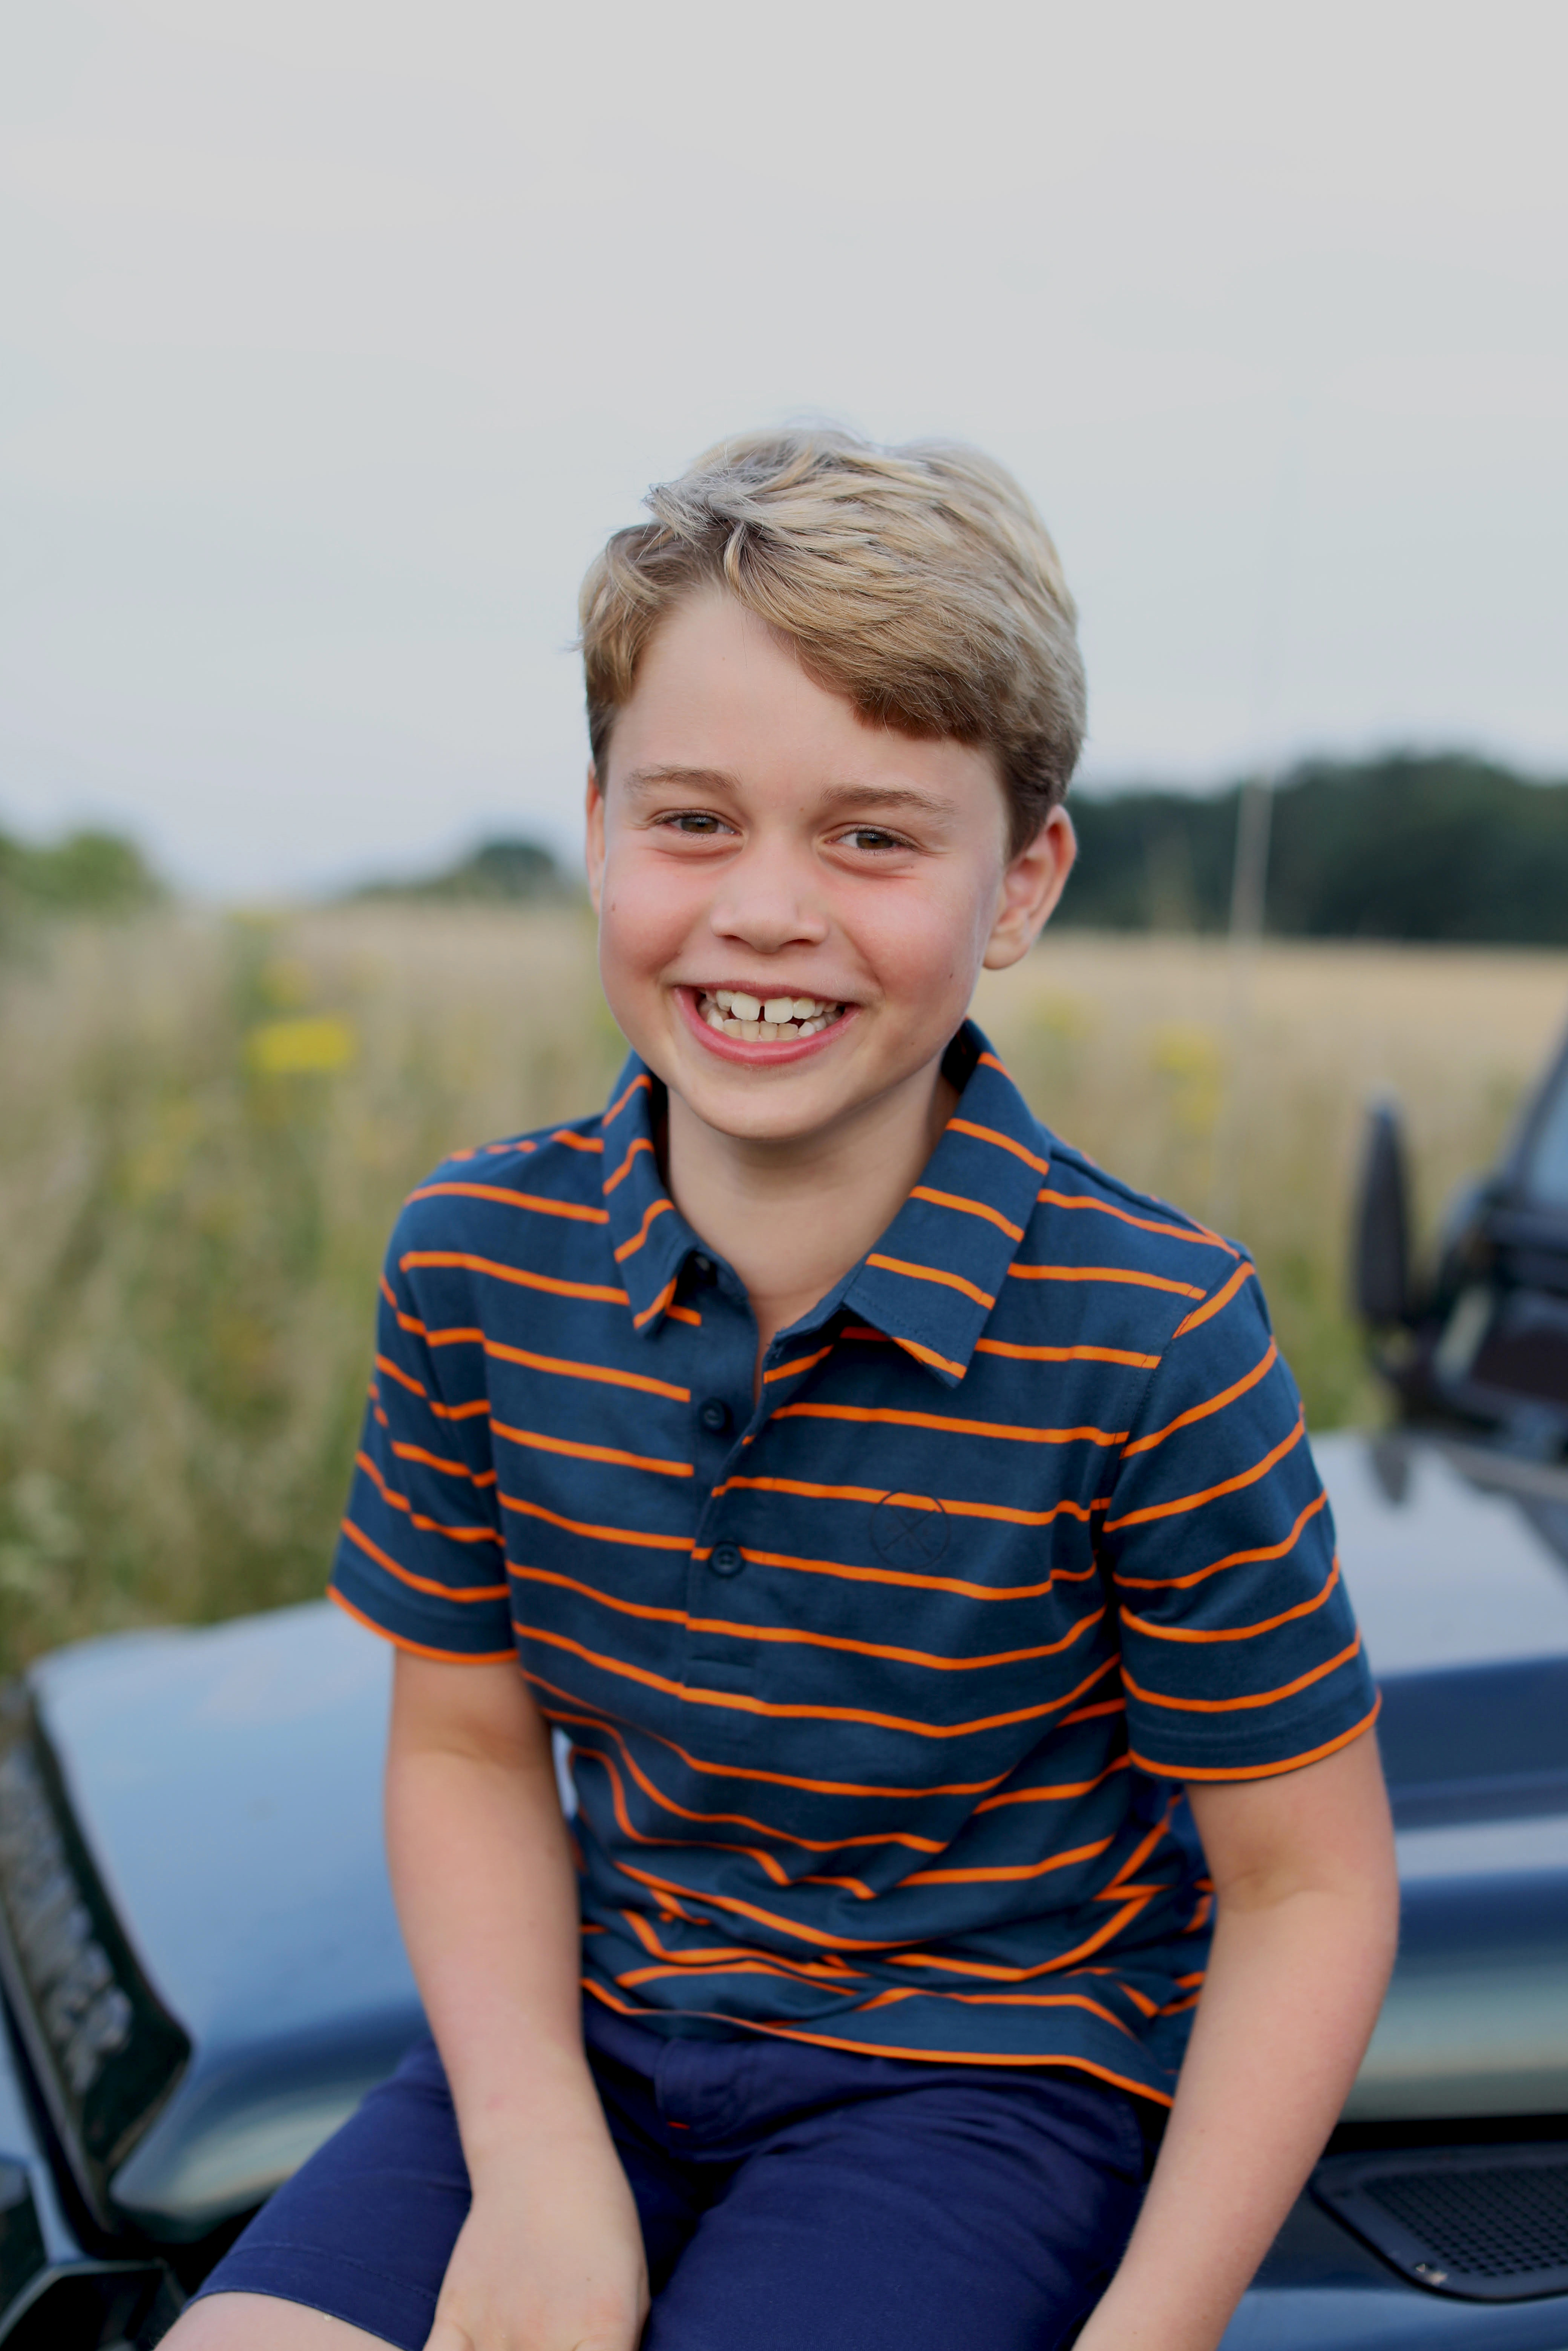 Britain's Prince George poses ahead of his eighth birthday in this picture taken by his mother, Catherine, the Duchess of Cambridge, in Norfolk, Britain July 2021. The Duchess of Cambridge/Handout via REUTERS